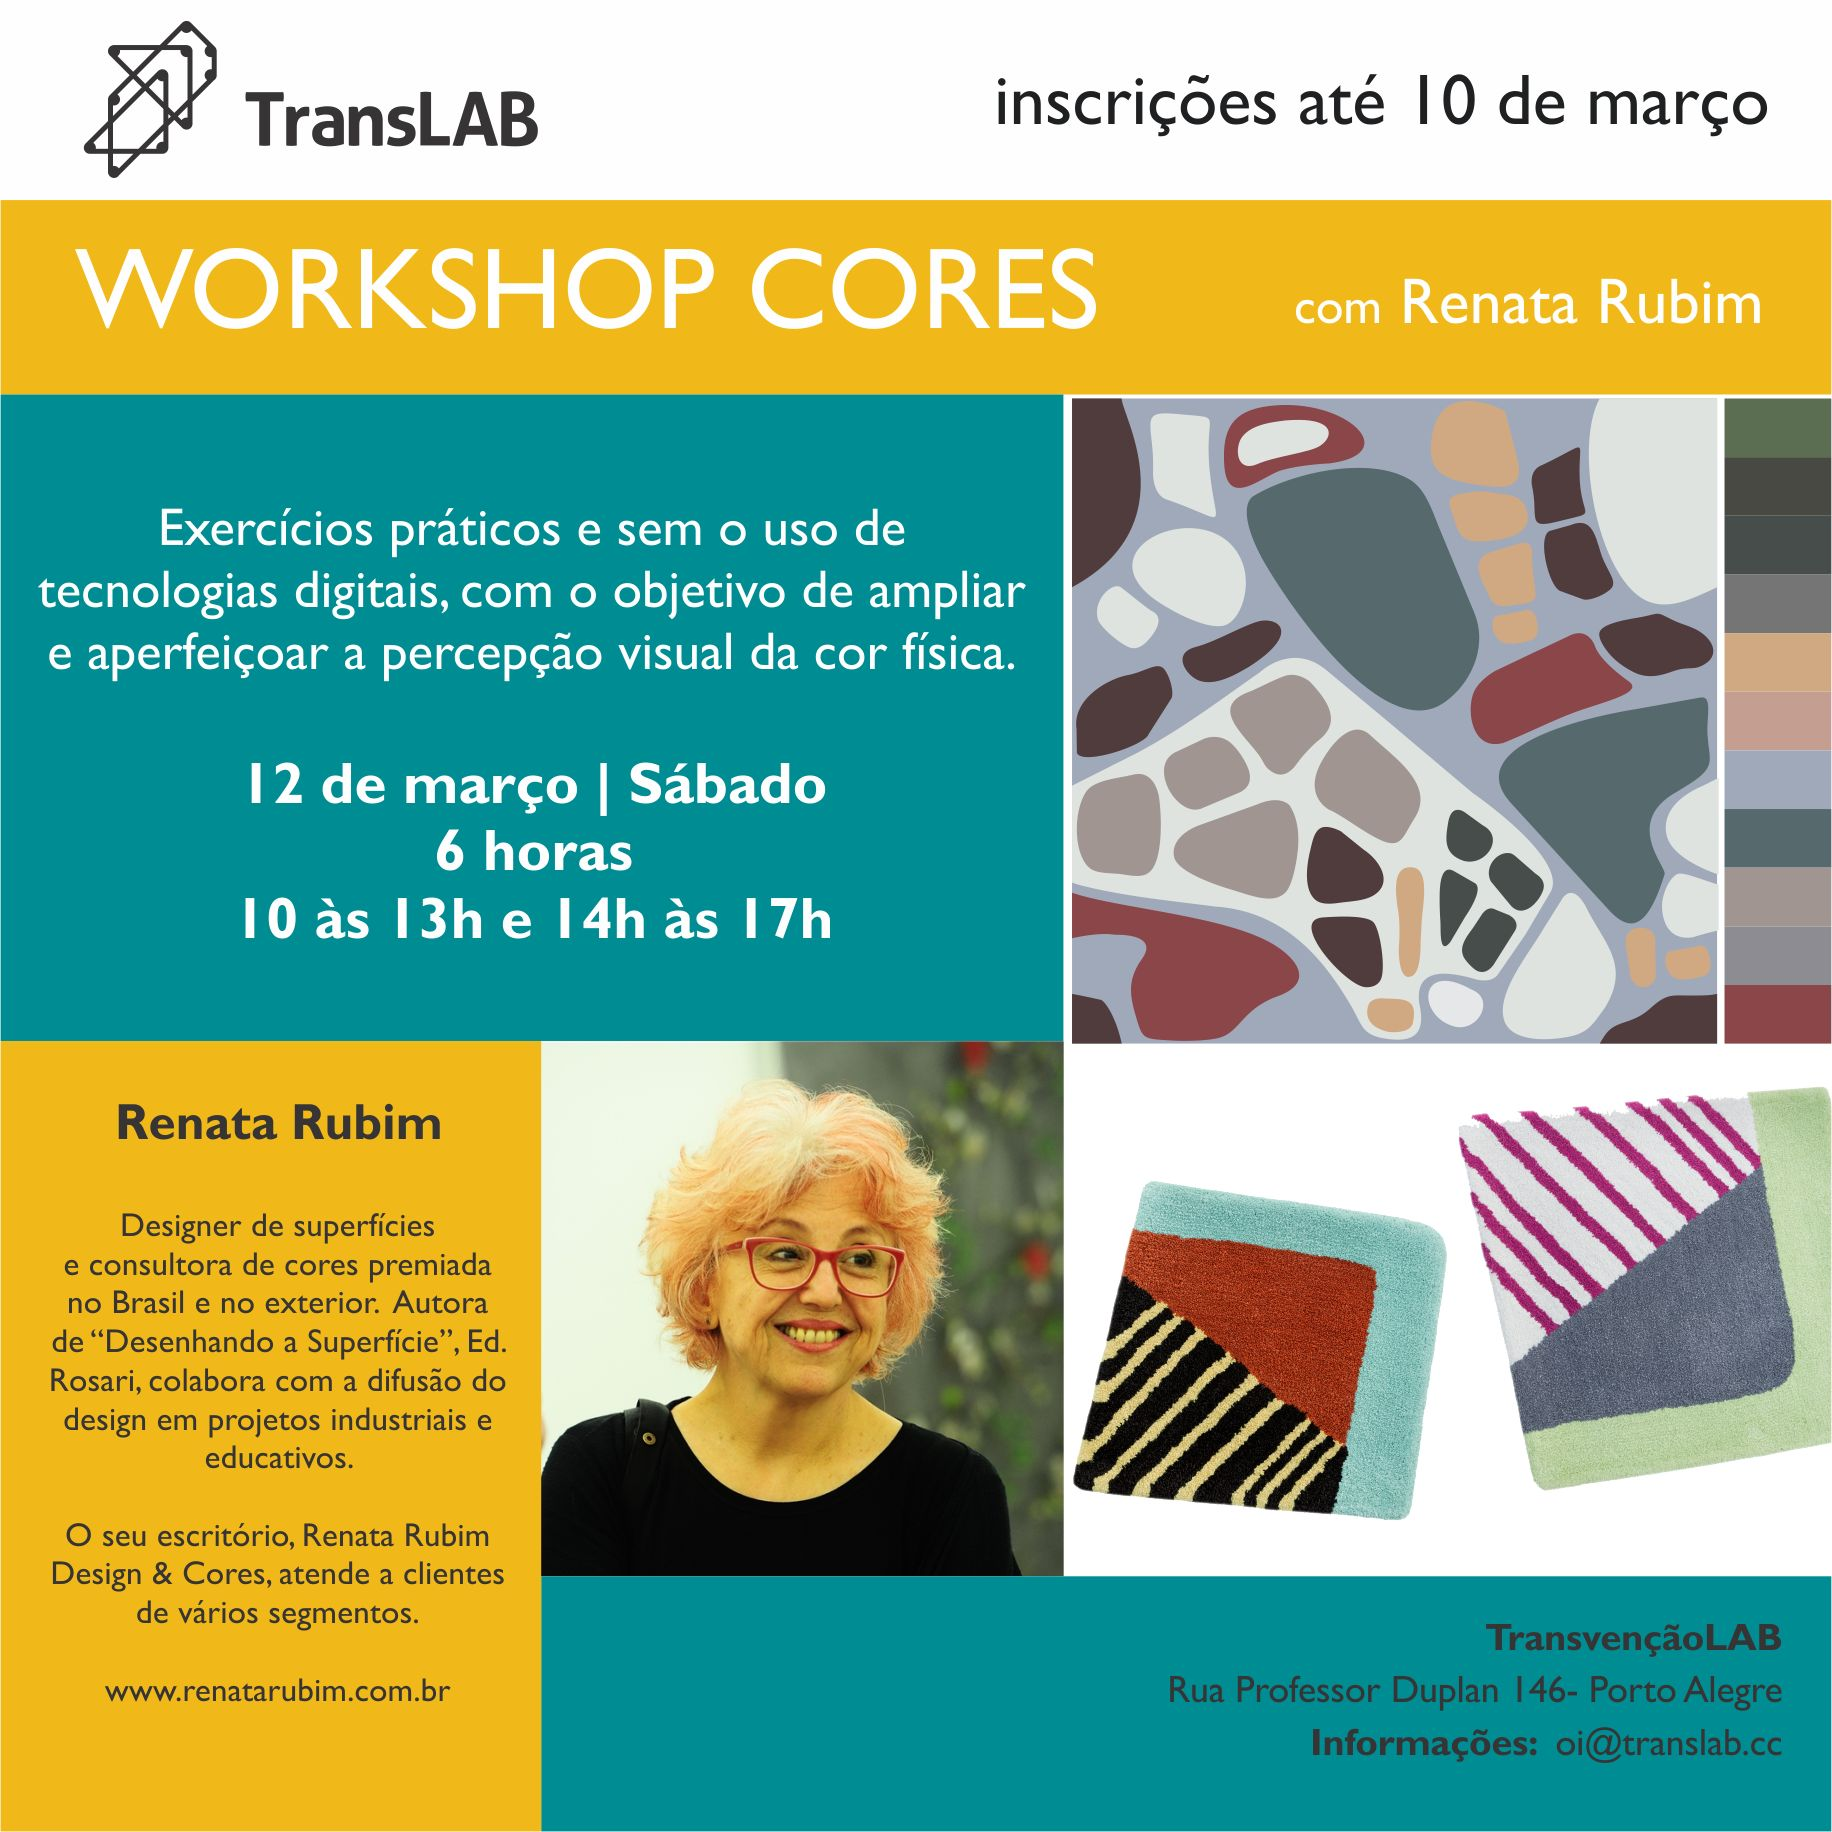 Workshop Cores | TransLAB